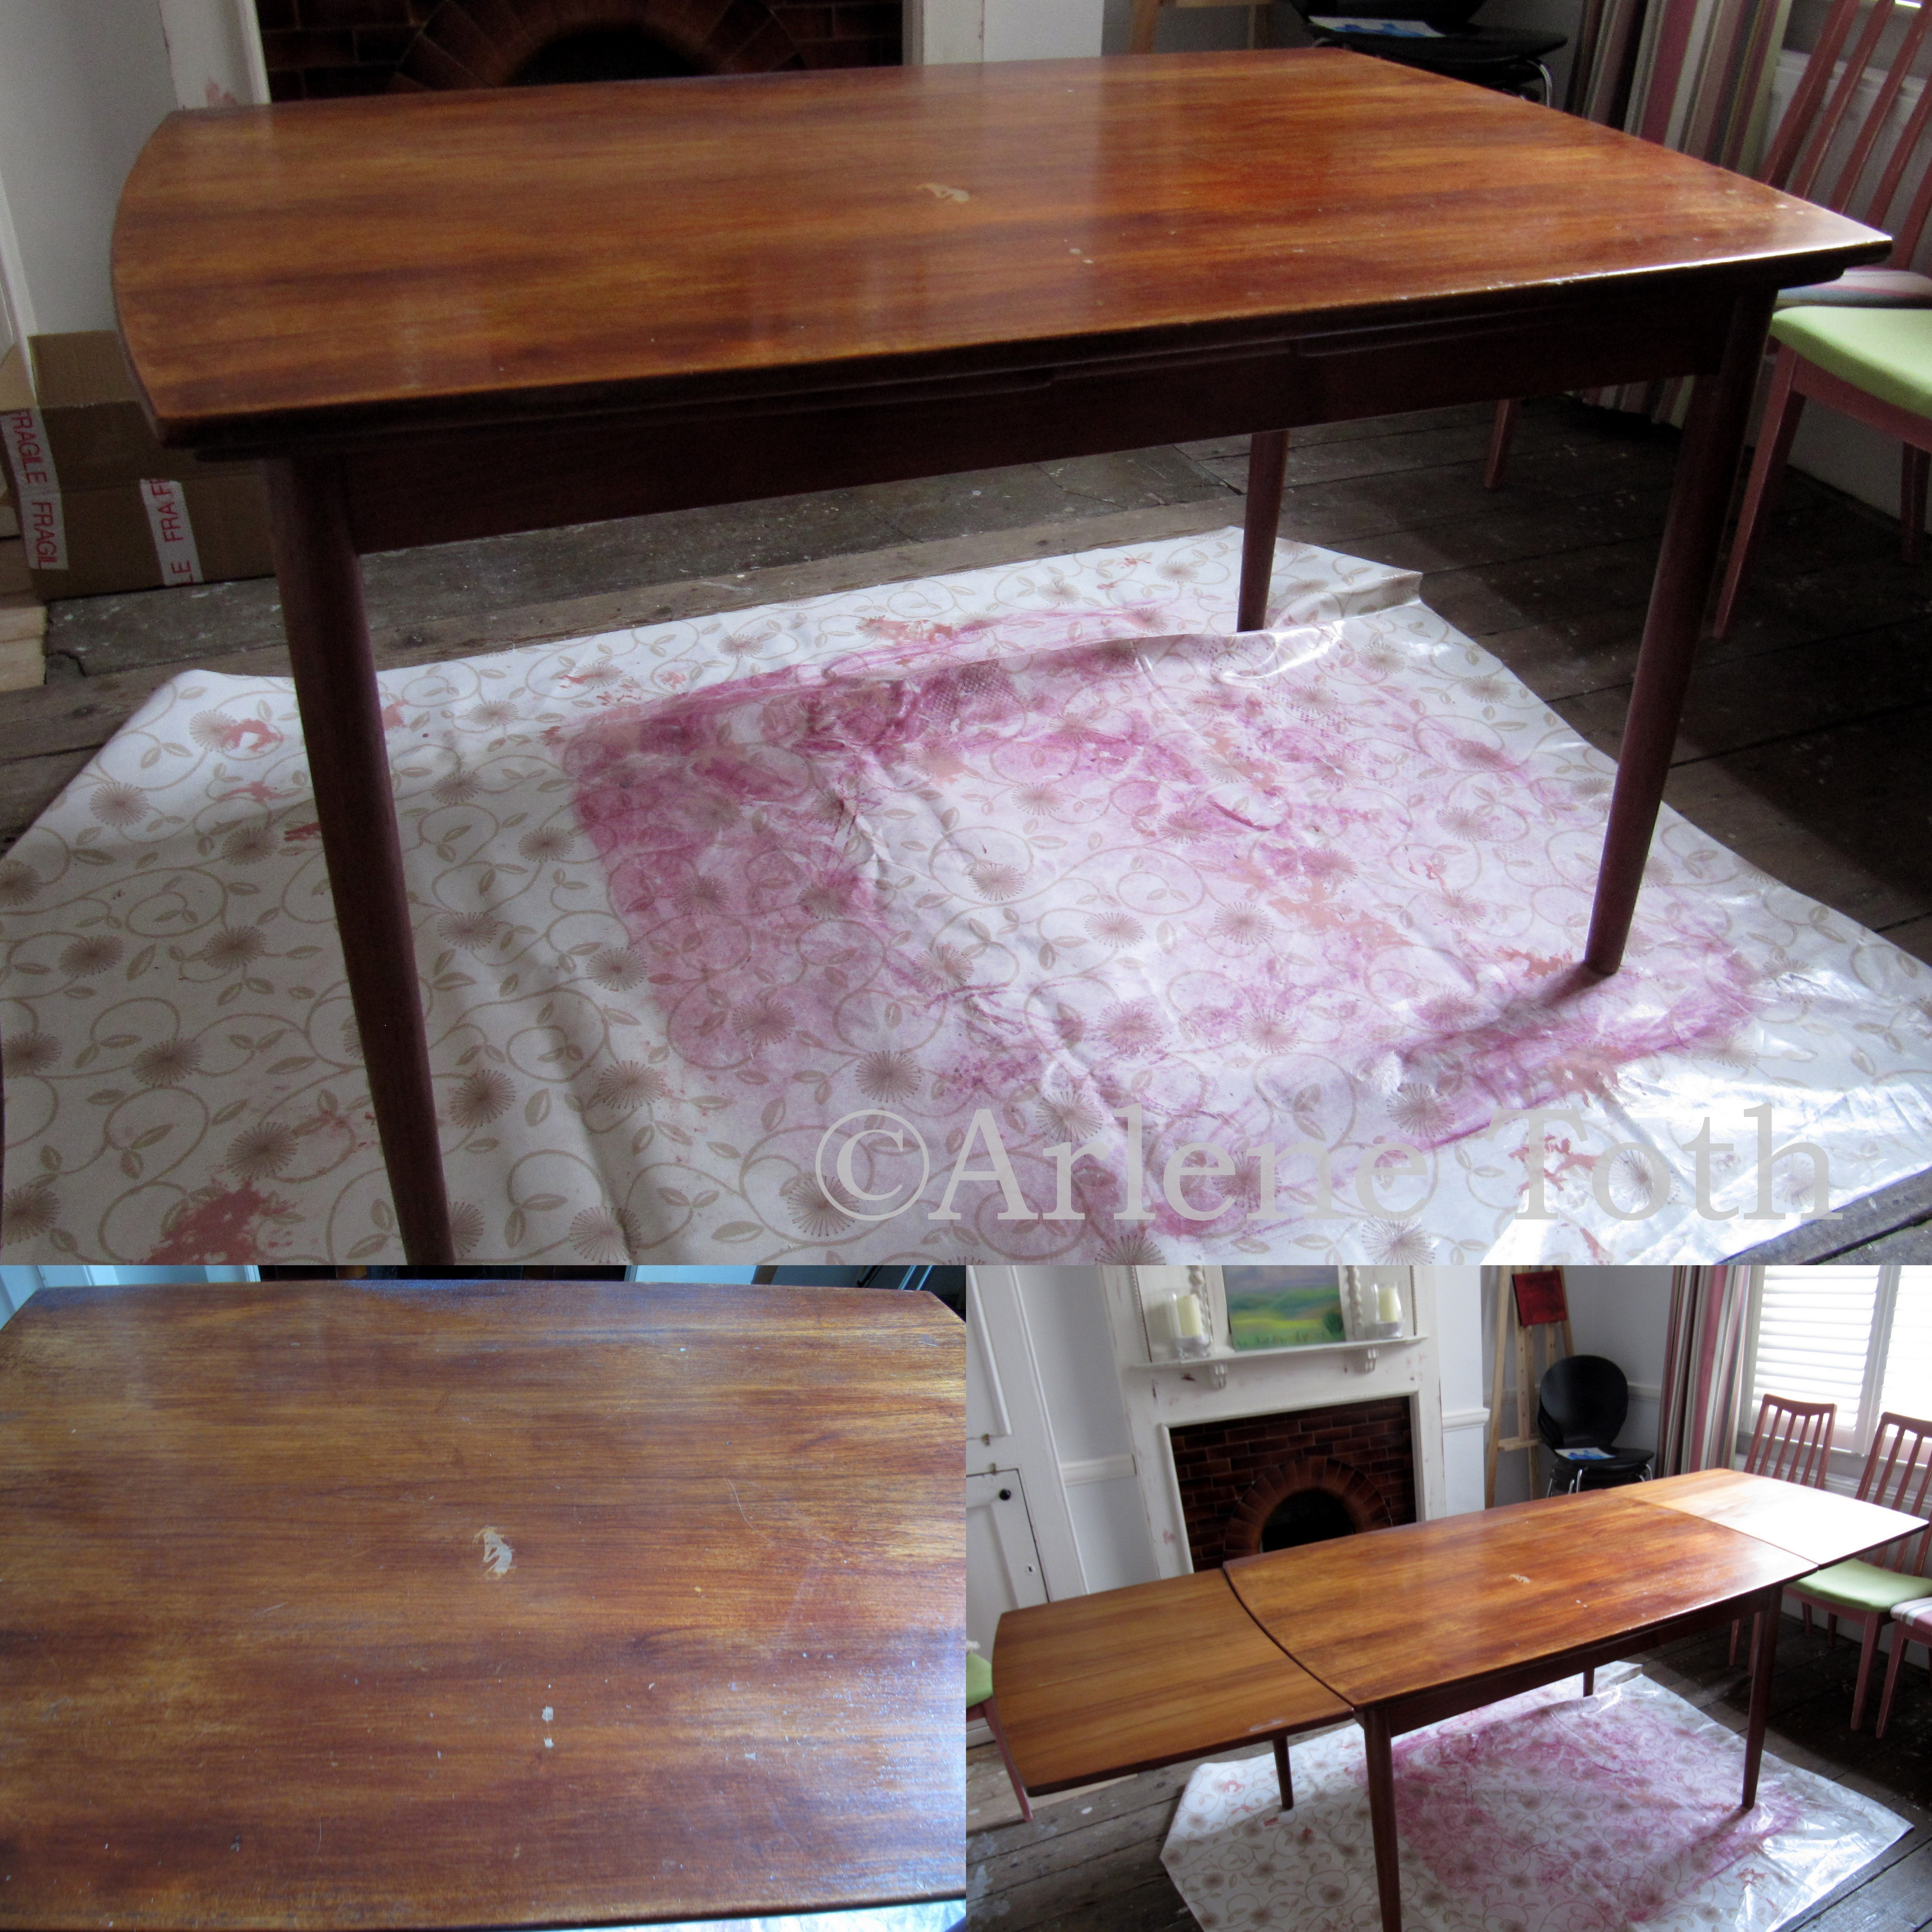 Diy woodworking plans square dining table plans free for Dining table plans woodworking free